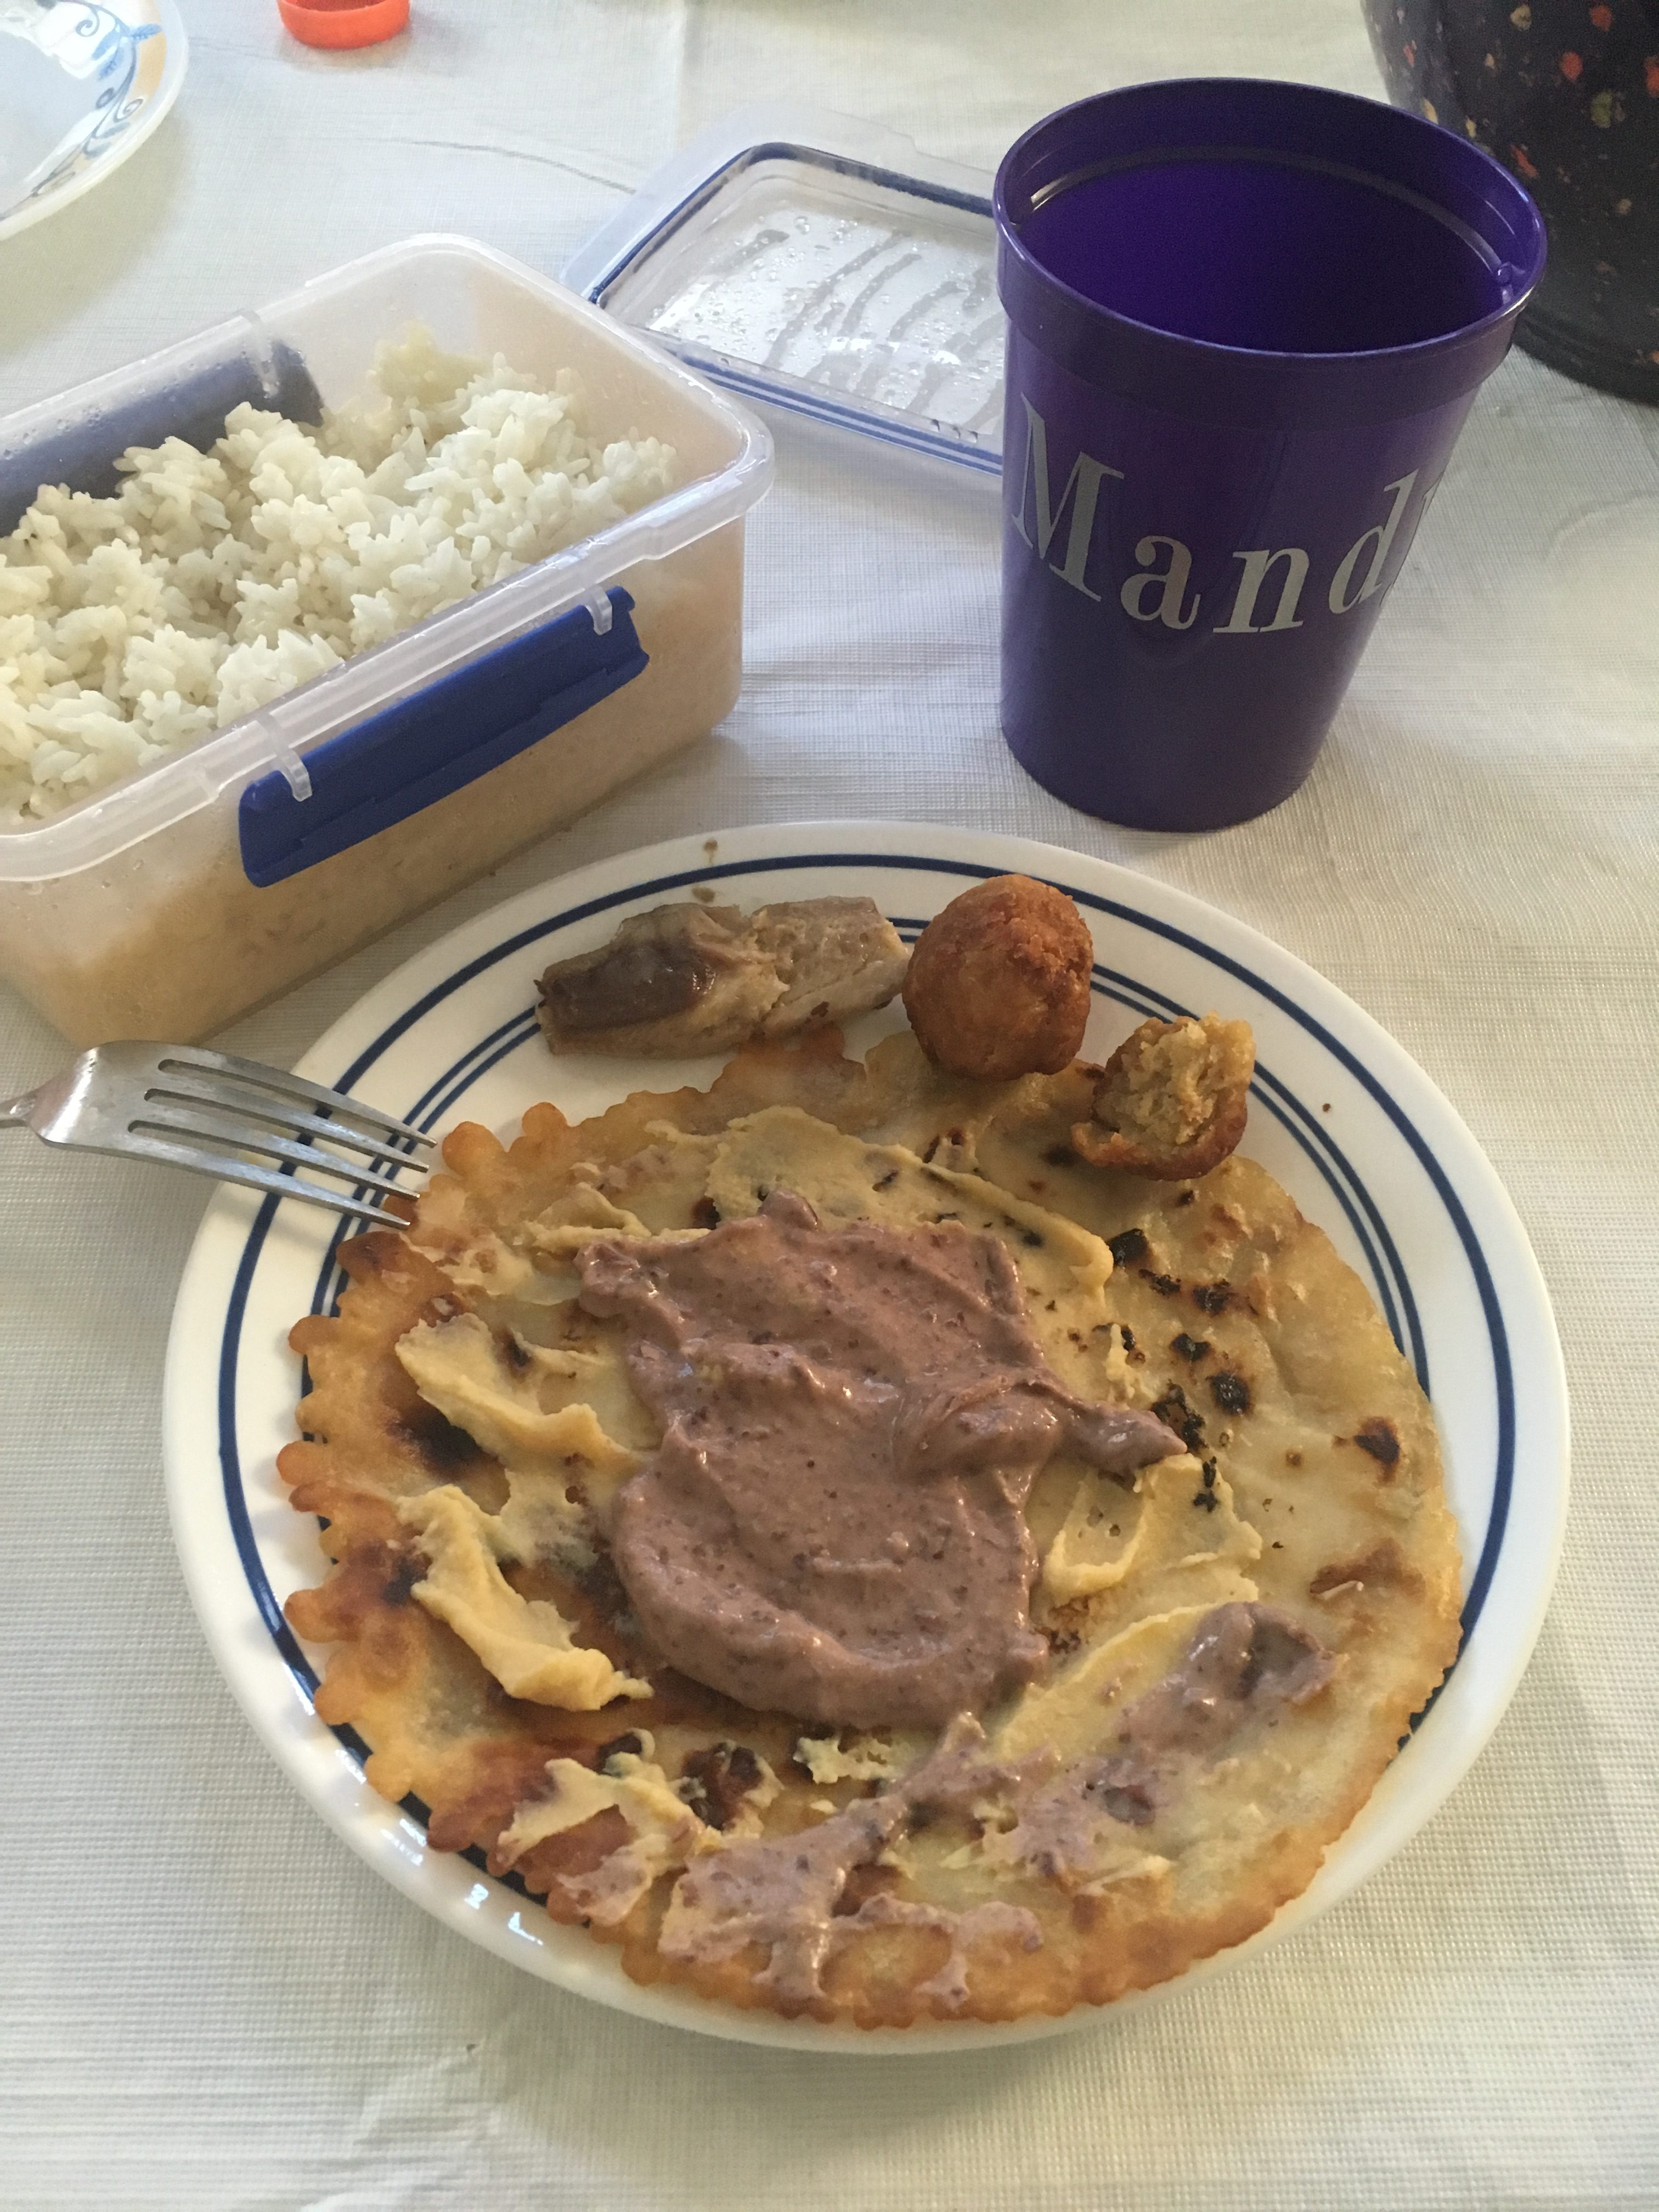 After experiencing a Learning Tour in Africa with New Community Projects, Mandy North felt moved to stand in solidarity with her worldly neighbors by participating in a seven day refugee ration challenge. The Brave Files.